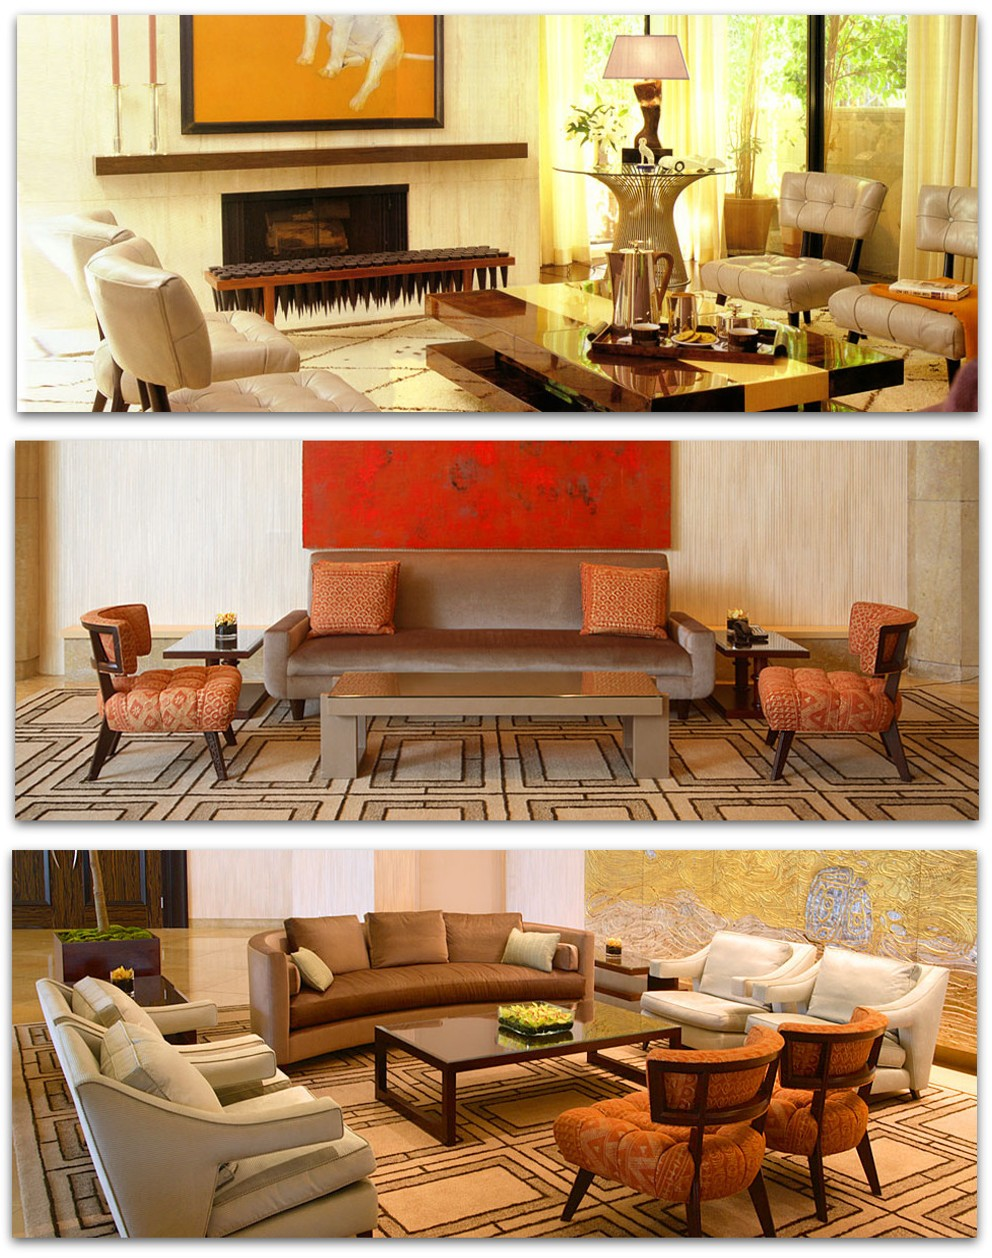 The Great Billy Haines   Contemporary residences  Contemporary interiors created with William Haines